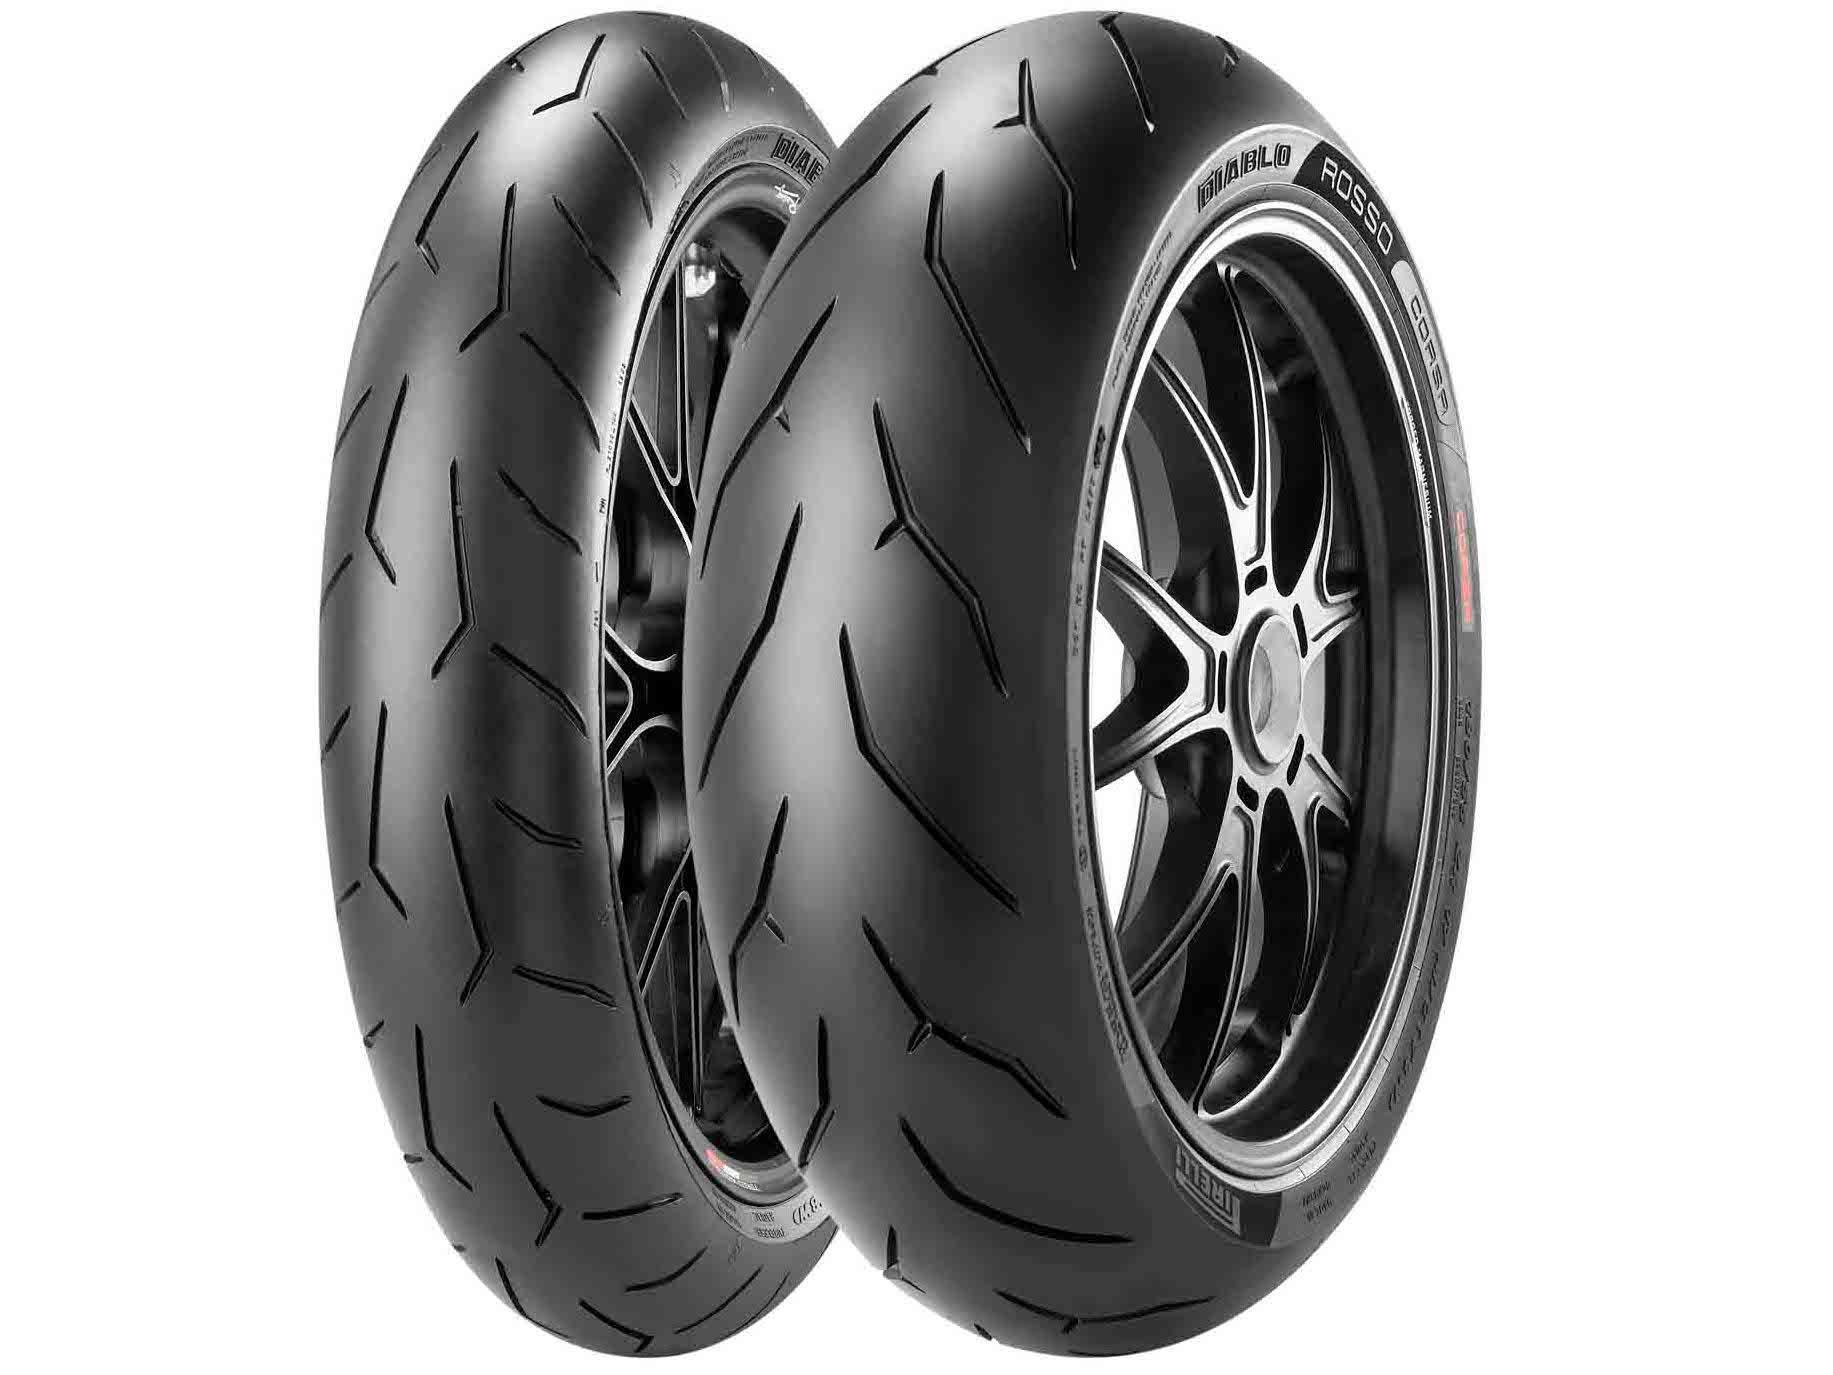 Pirelli Diablo Rosso Corsa Tire - Rear - 200/55ZR-17 , Position: Rear, Rim Size: 17, Tire Application: Race, Tire Size: 200/55-17, Tire Type: Street, Load Rating: 78, Speed Rating: W, Tire Construction: Radial 2321800